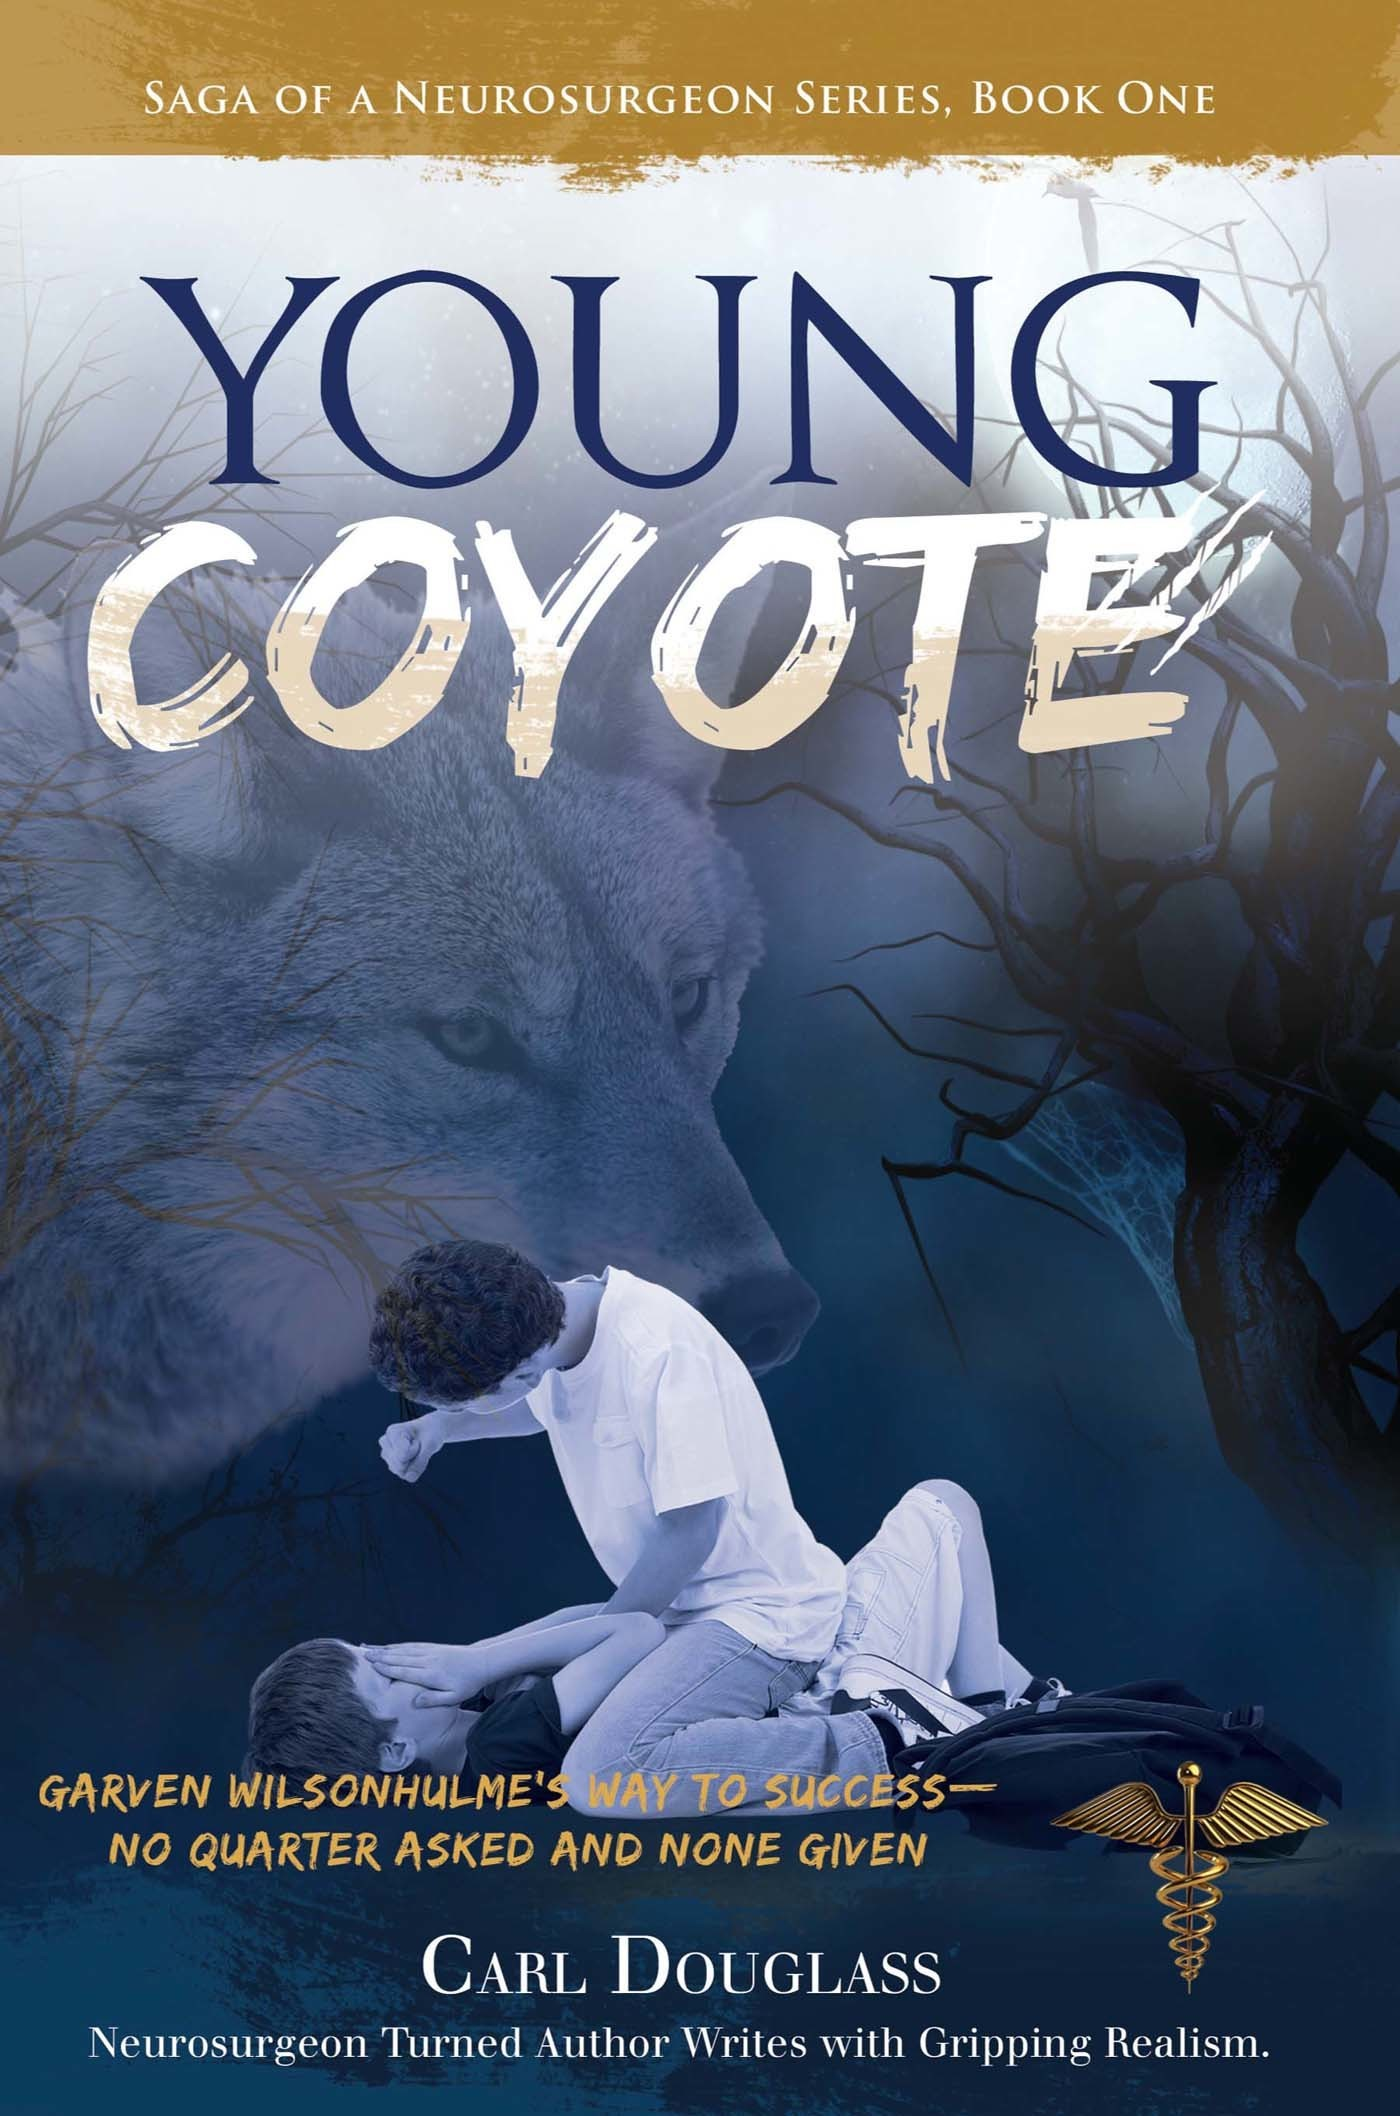 The Young Coyote: Garven Wilsonhulme's Way to Success—No Quarter Asked and None Given